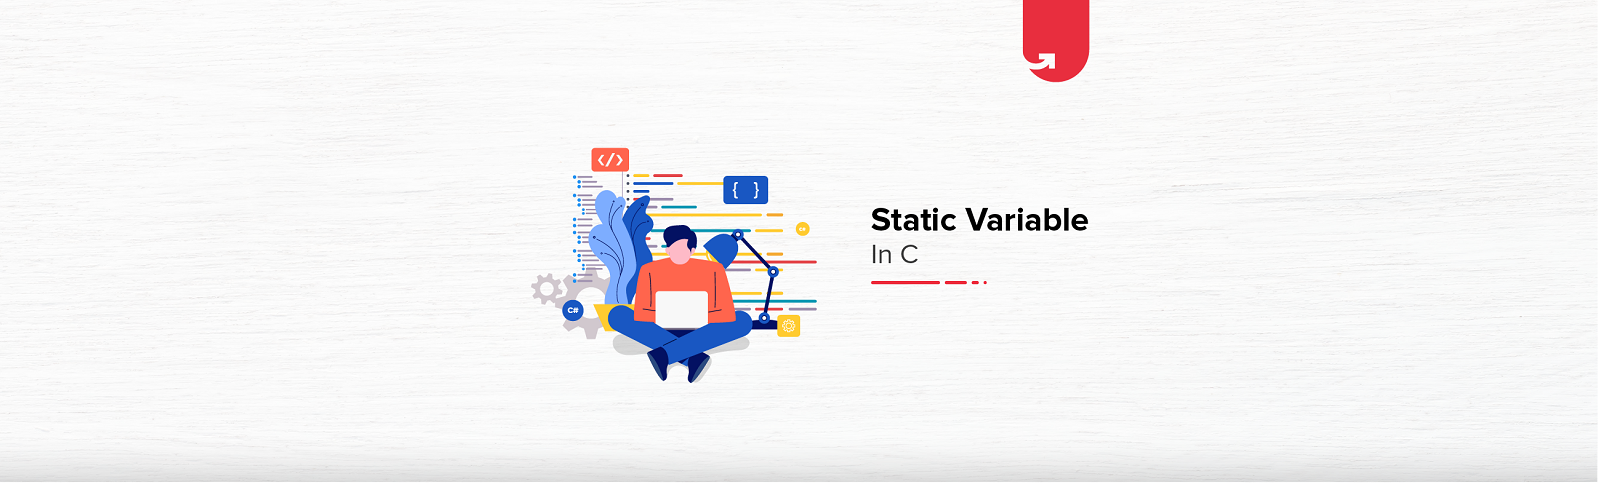 Learn About Static Variable in C [With Coding Example]